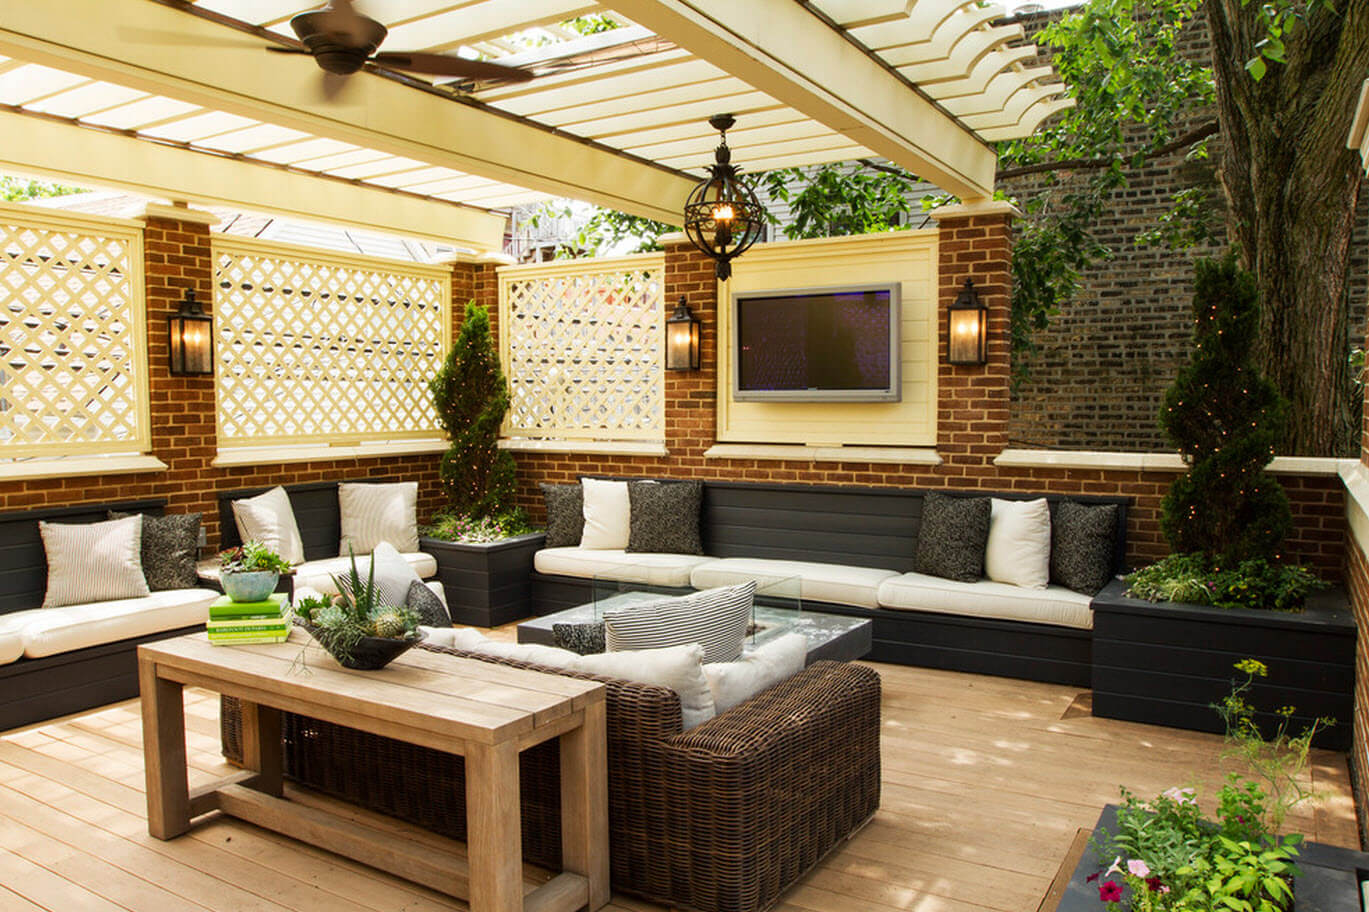 Terrace furniture with enclosure and wooden ceilings